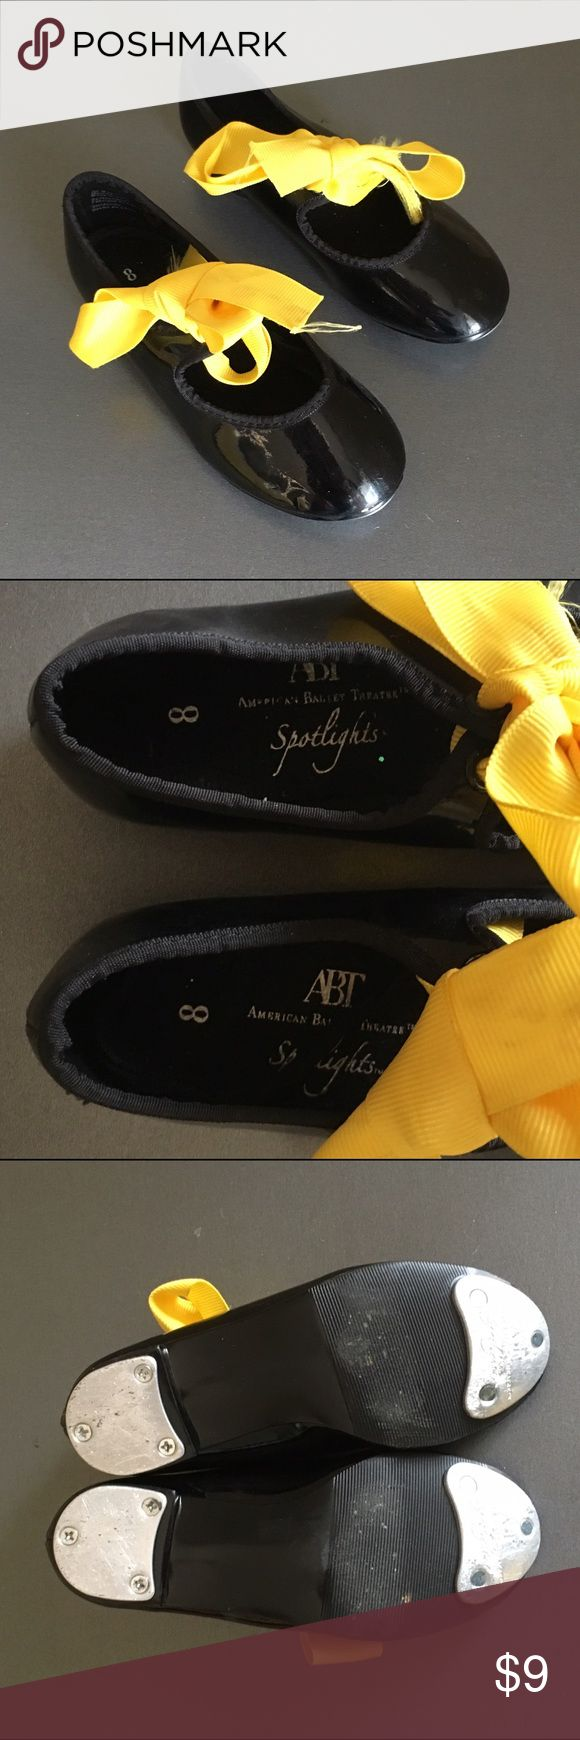 Kids | Like new! American Ballet Theatre Tap Shoes Kids | Like new! American Ballet Theatre tap shoes worn 1x for a performance. American Ballet Theatre Shoes